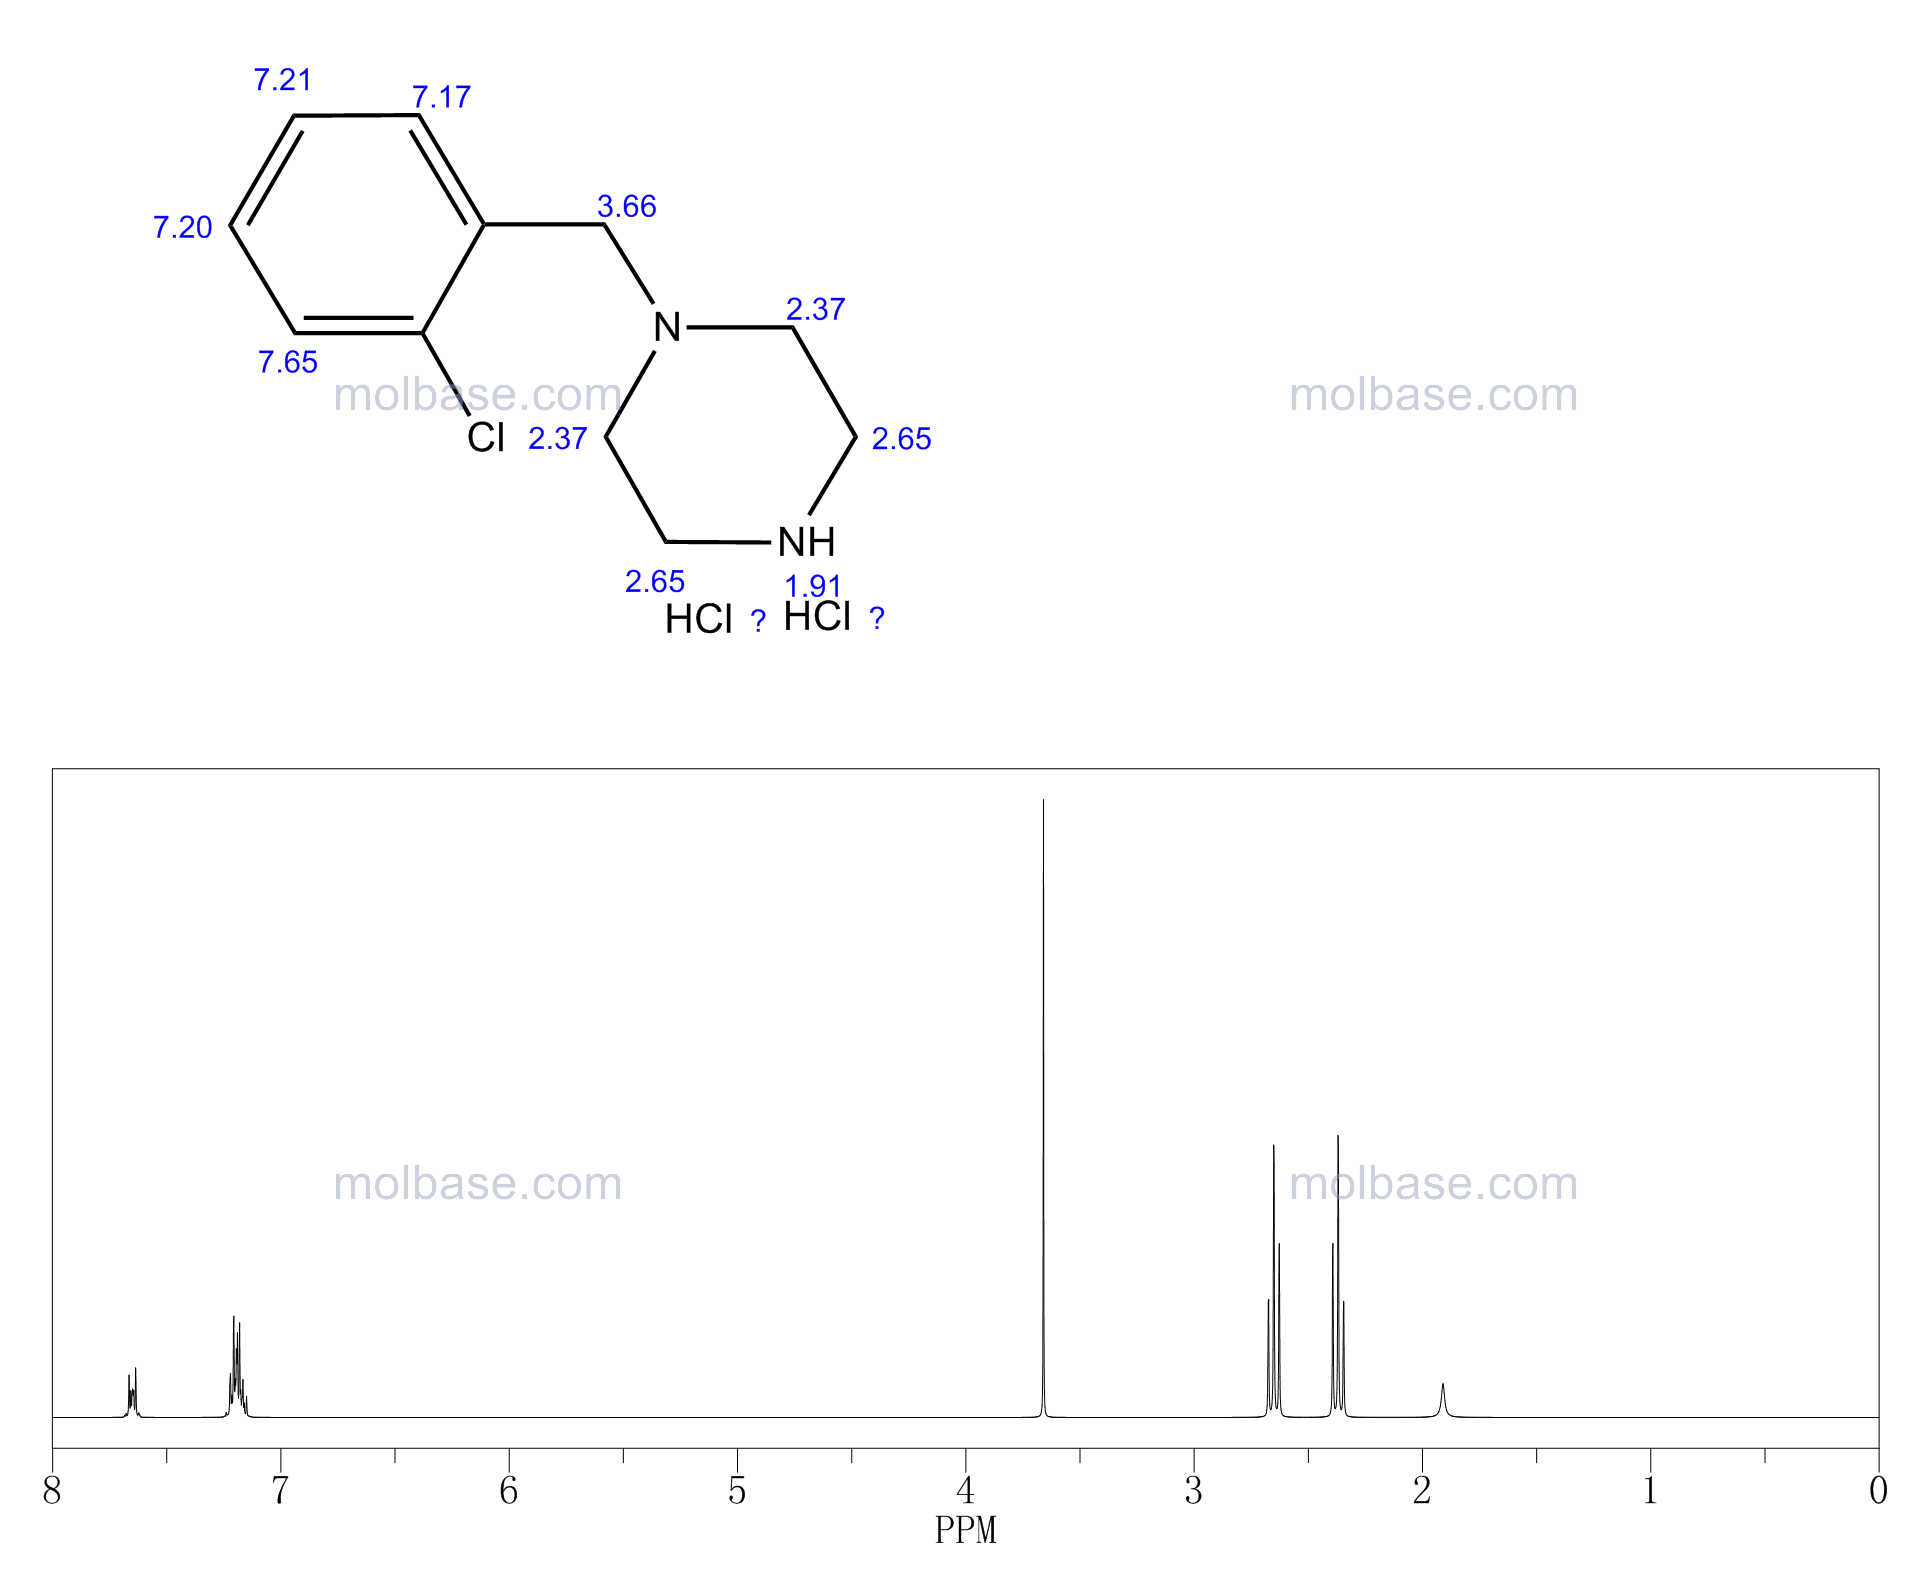 1-[(2-chlorophenyl)methyl]piperazine,dihydrochloride NMR spectra analysis, Chemical CAS NO. 199672-00-9 NMR spectral analysis, 1-[(2-chlorophenyl)methyl]piperazine,dihydrochloride C-NMR spectrum